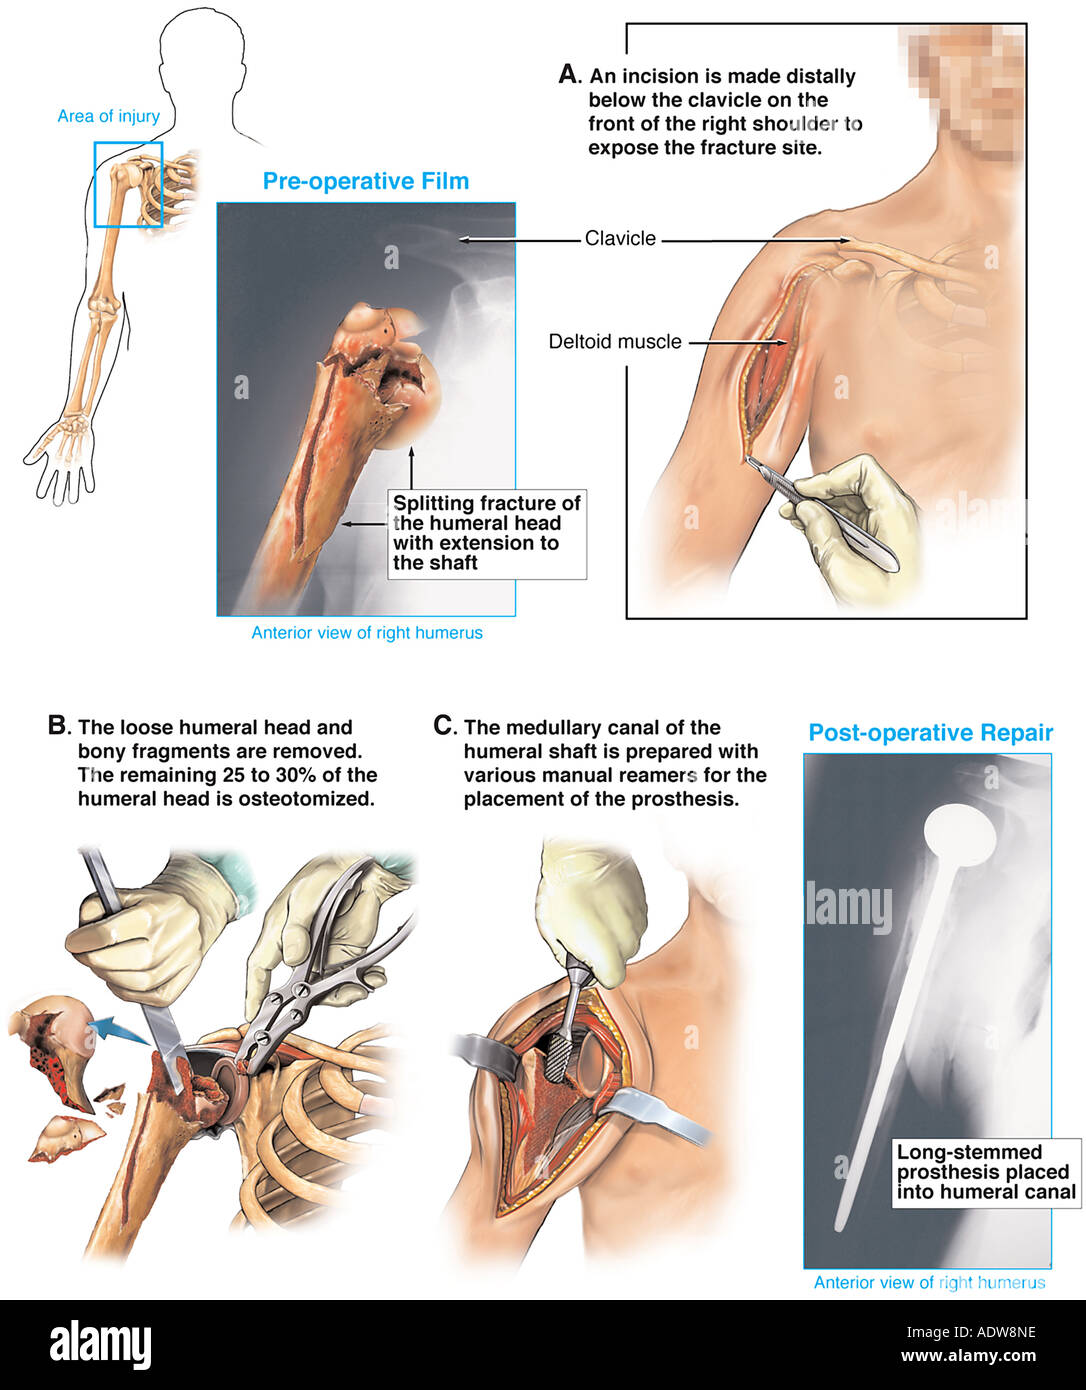 Total Shoulder Joint Replacement Surgery Arthroplasty Stock Photo